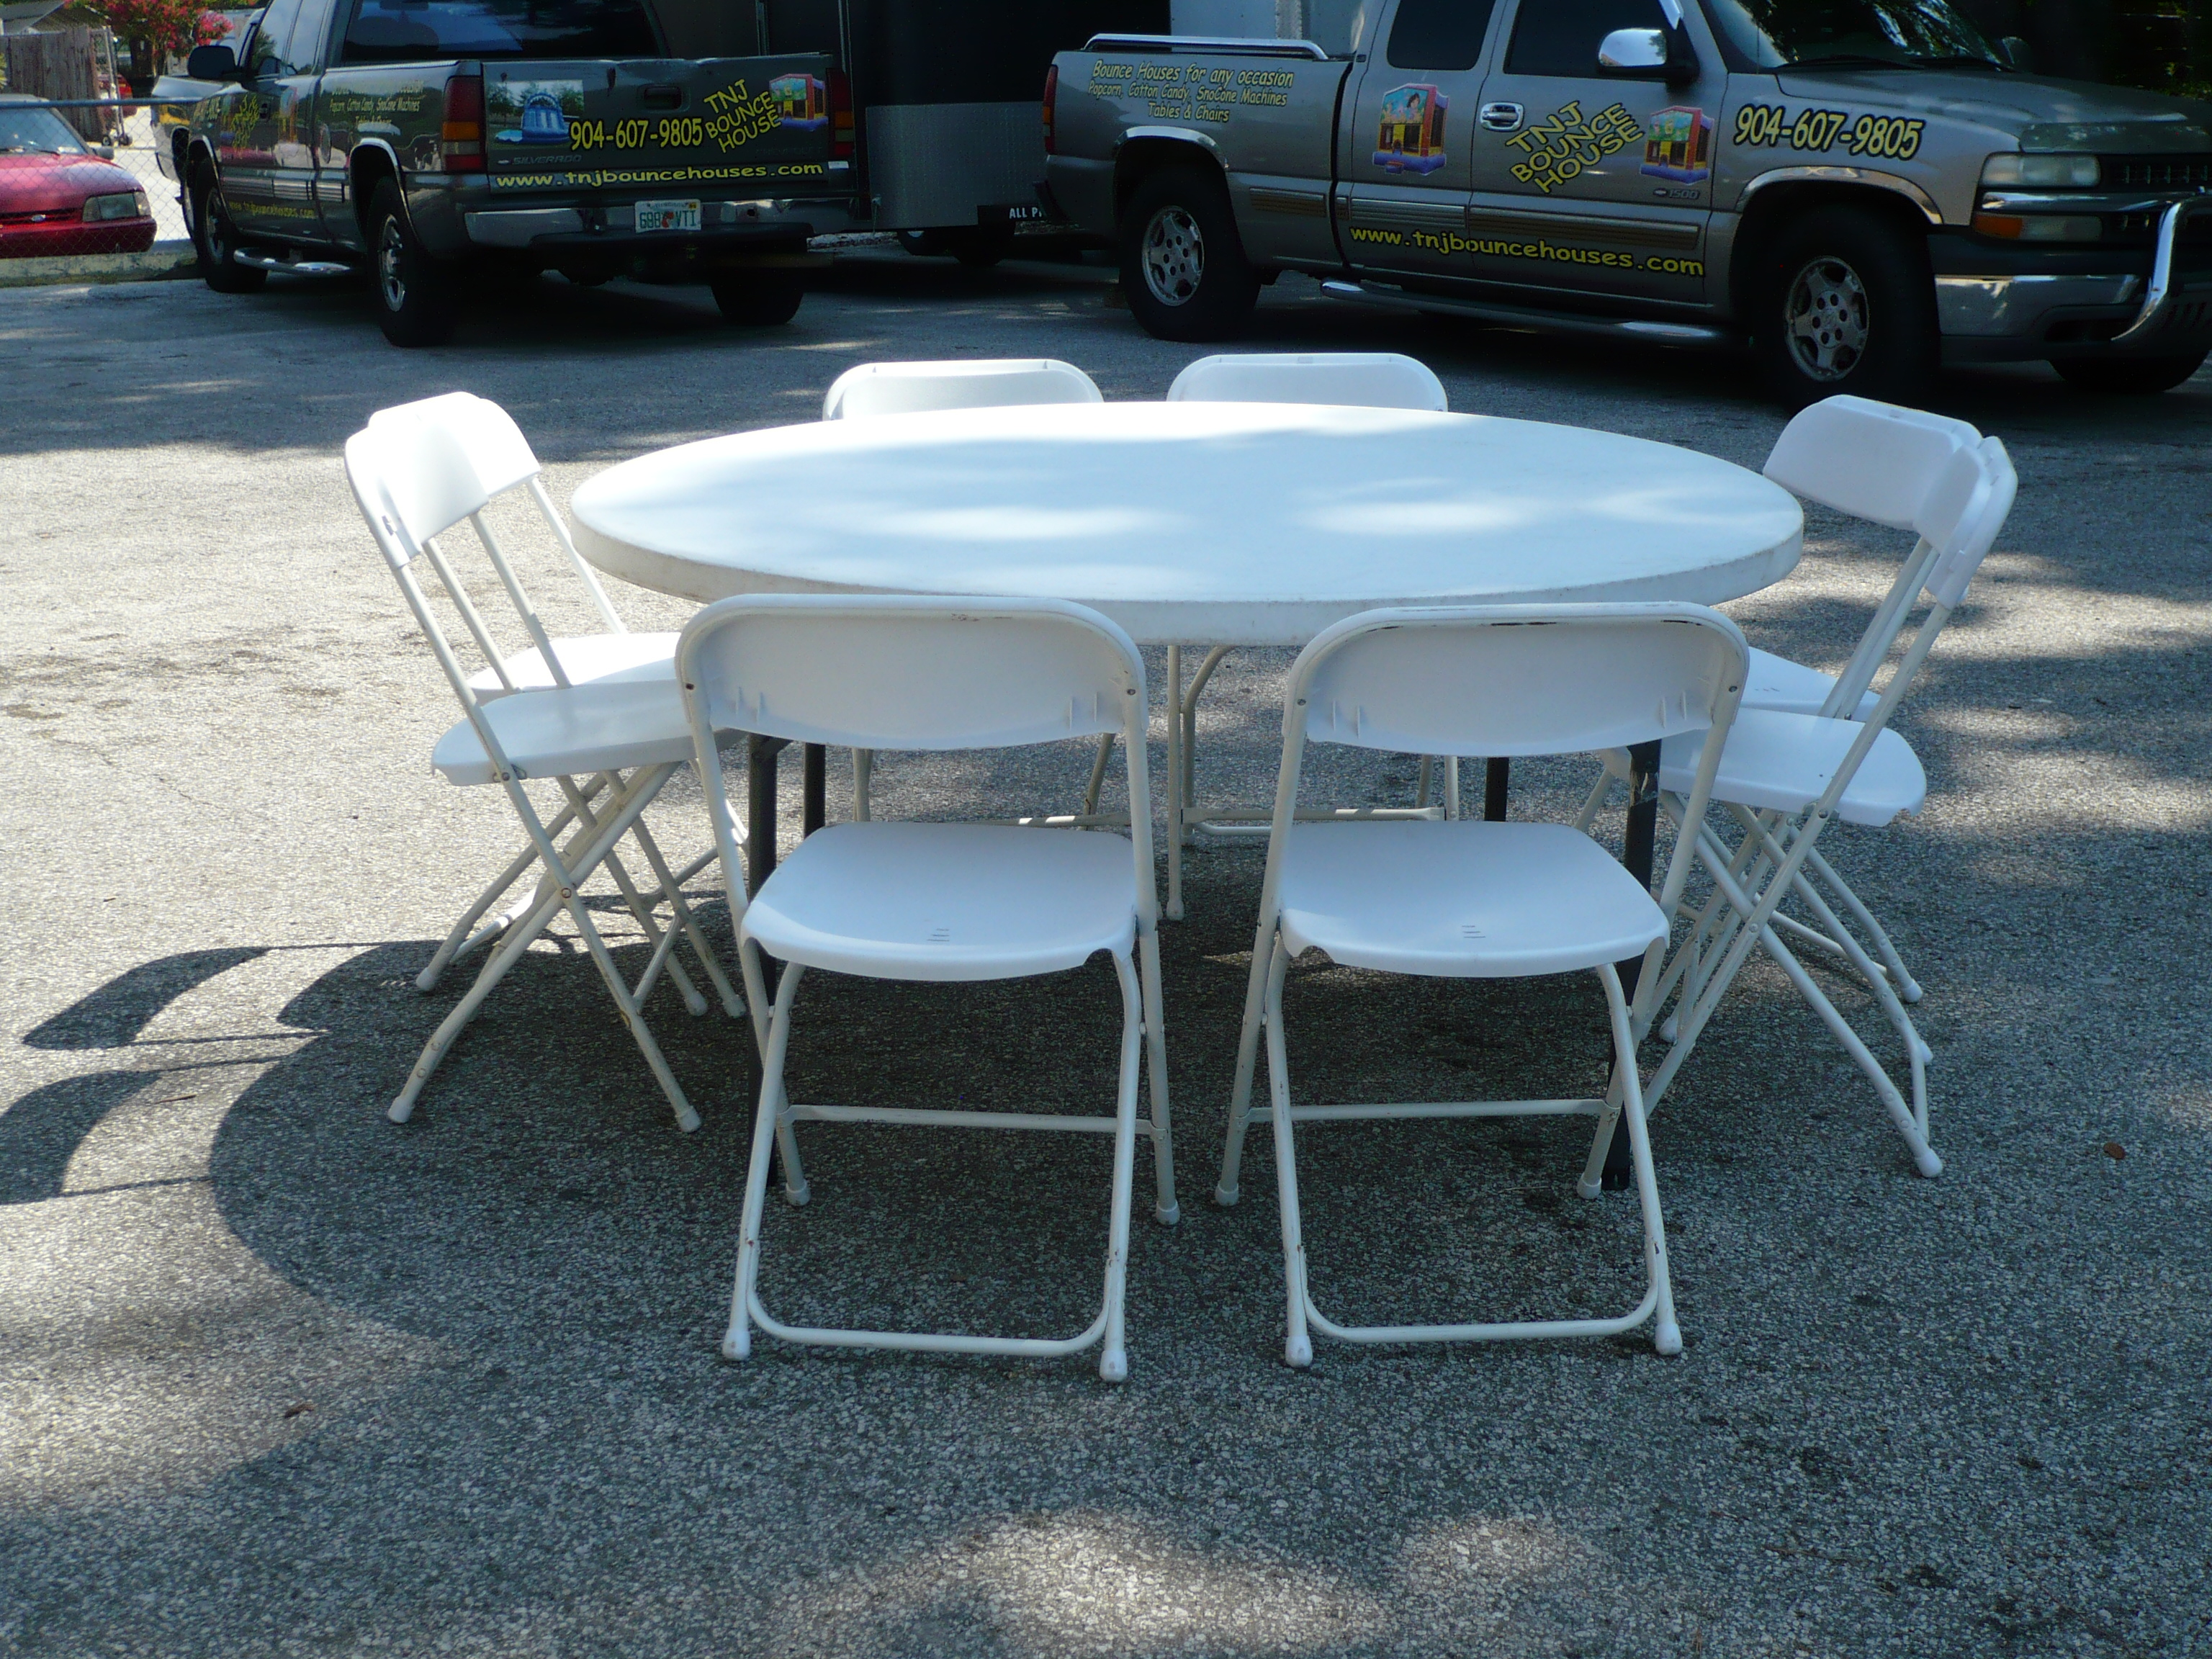 8 Foot Tables $10.00 A Piece 6 Foot Tables $8.00 A Piece 60u0027 Round Tables  $8.00 A Piece 72u0027 Round Tables $10.00 A Piece